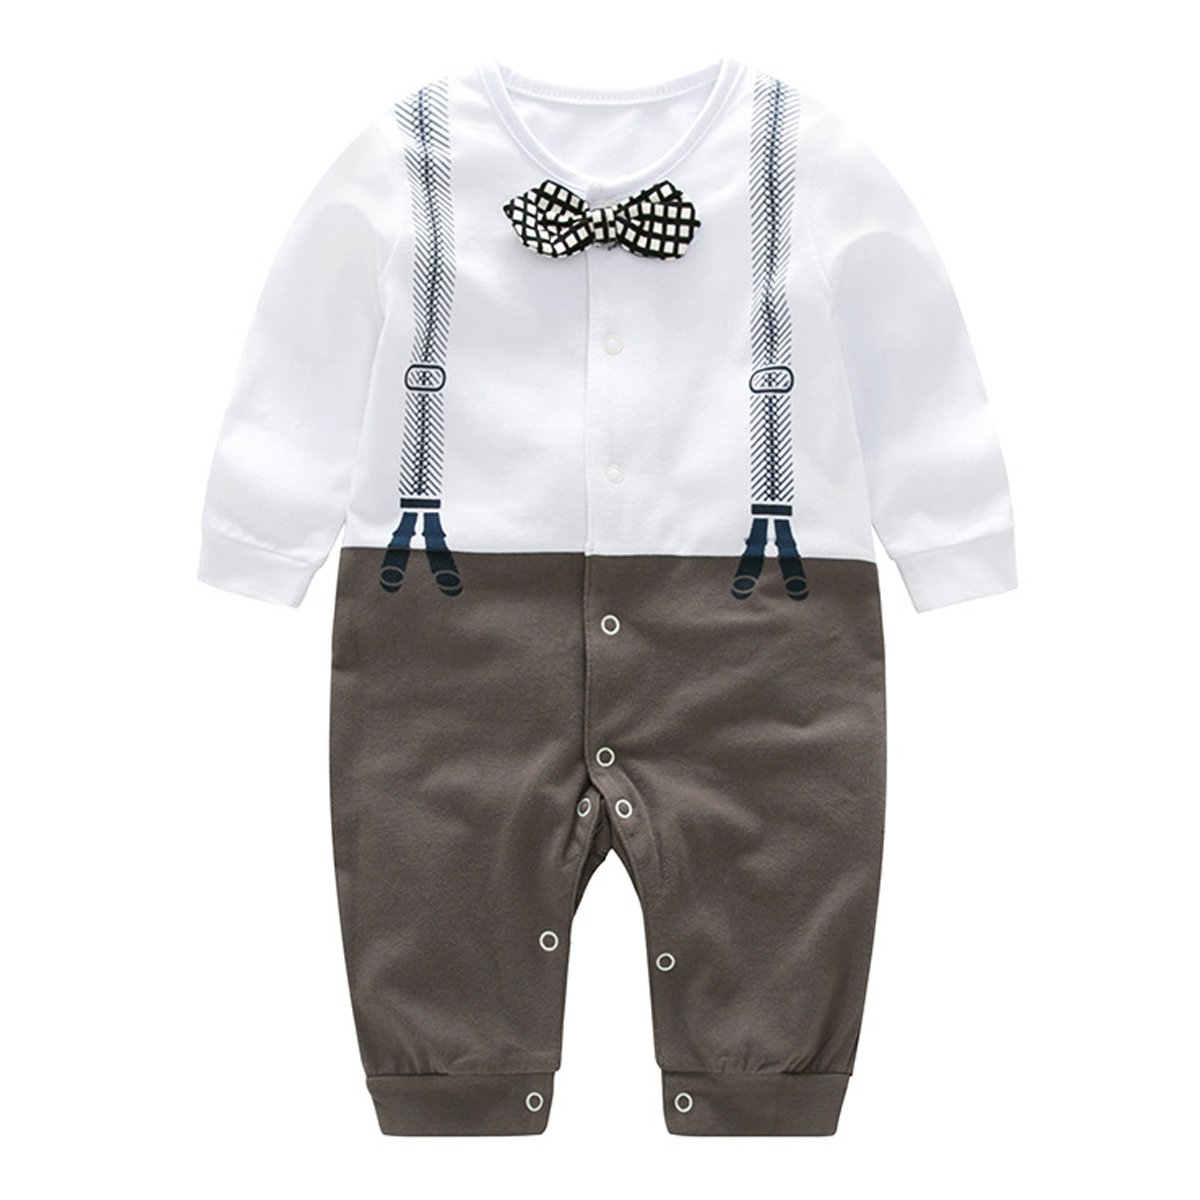 Bebone Baby Boys Outfits Clothes Wedding Gentleman Romper Jumpsuit Bowtie Bodysuit